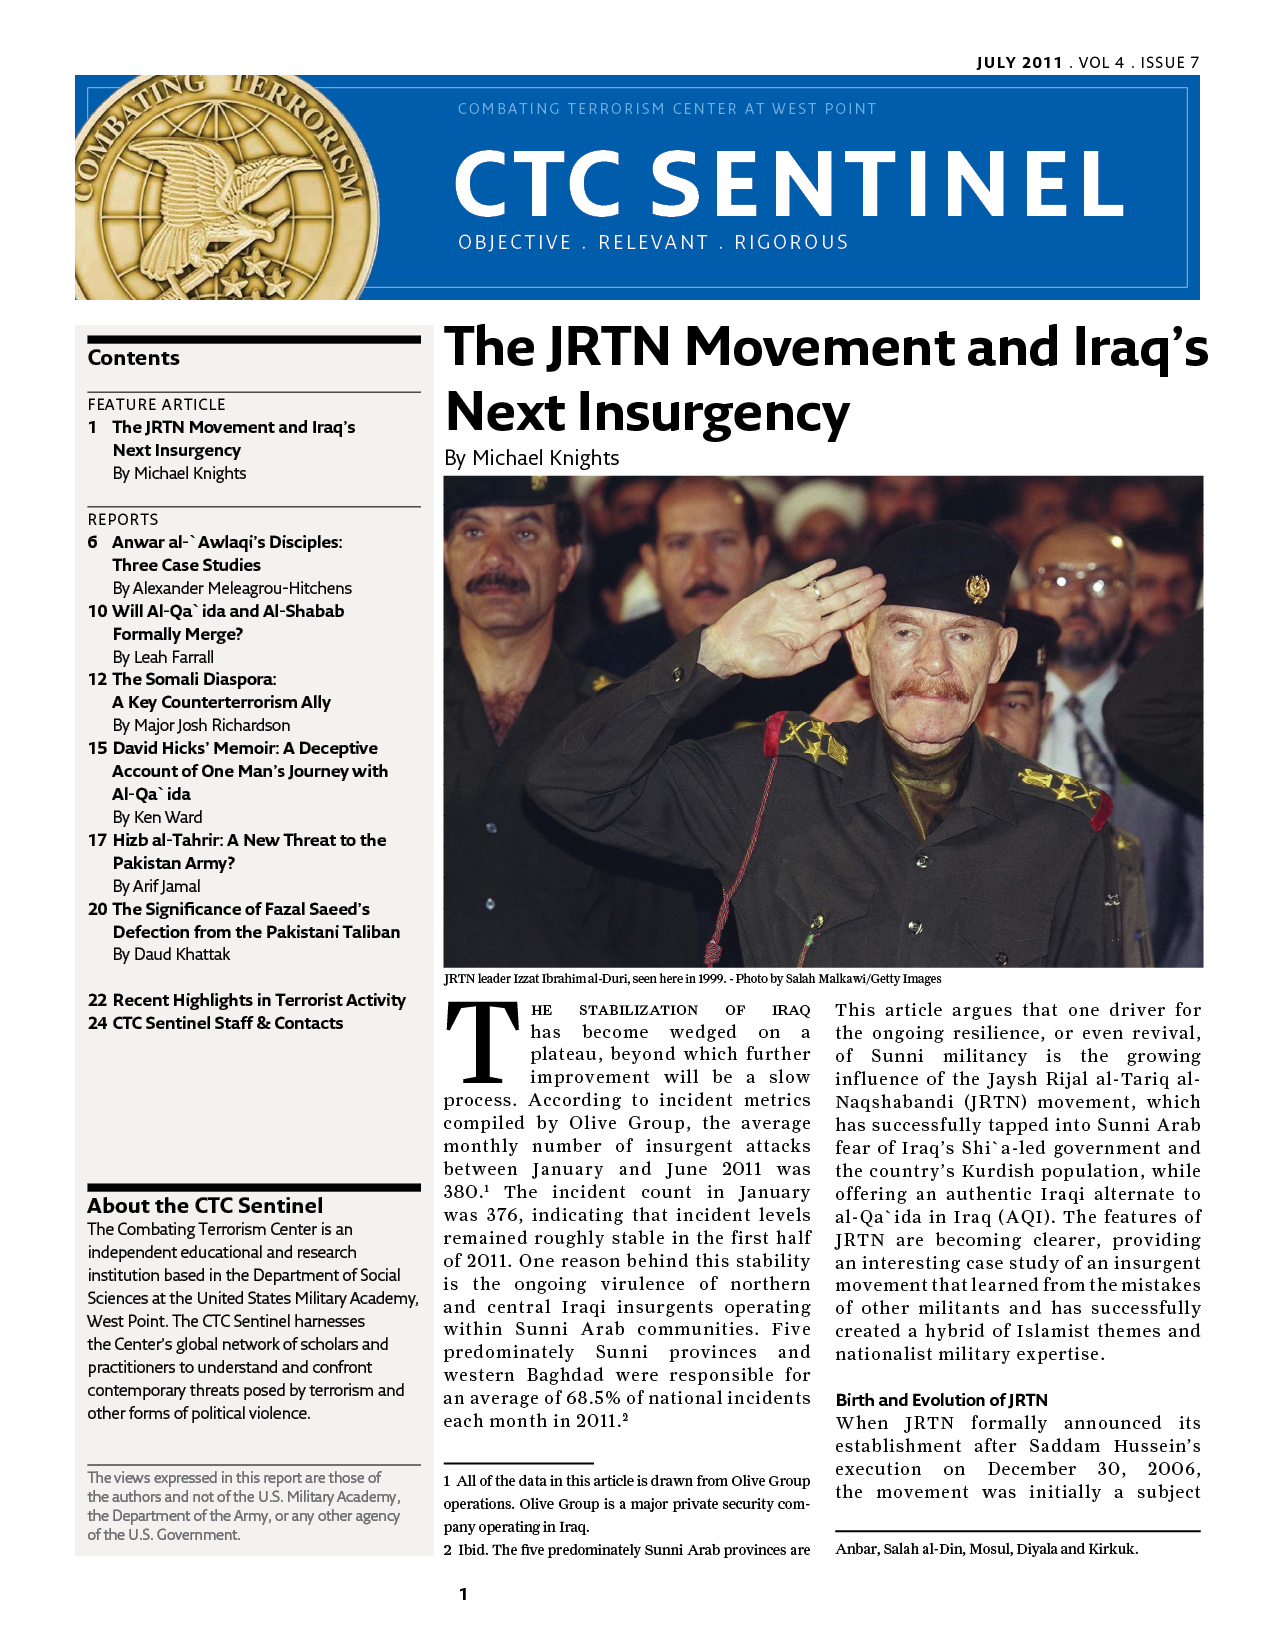 The Jrtn Movement And Iraq S Next